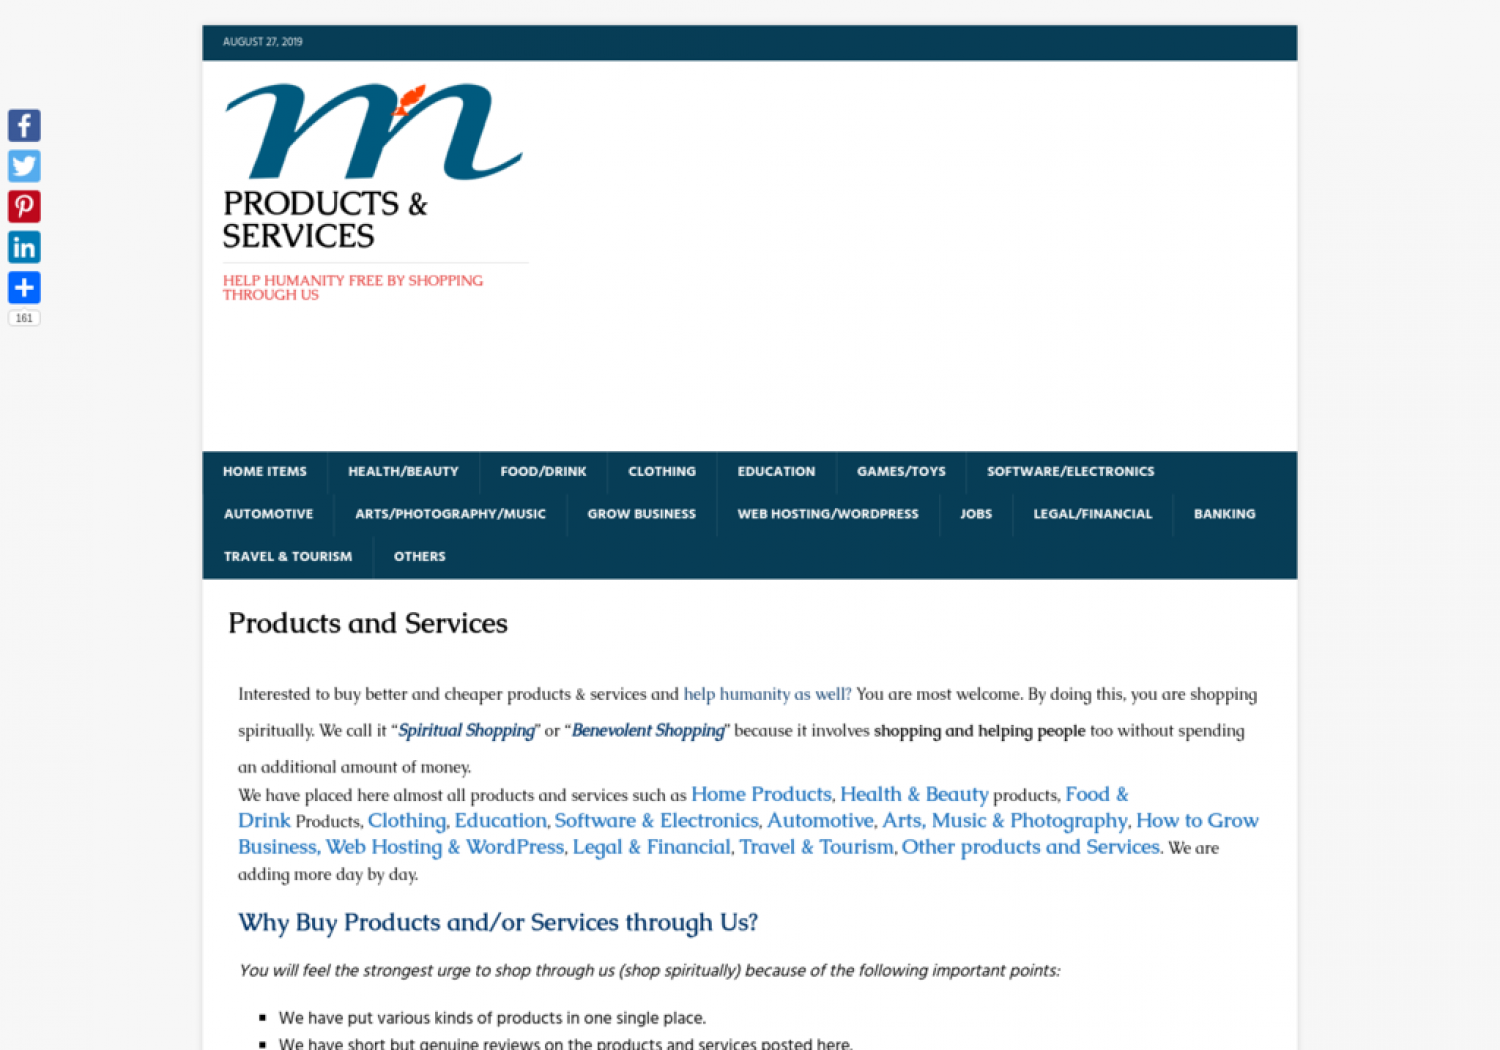 Products and Services Infographic